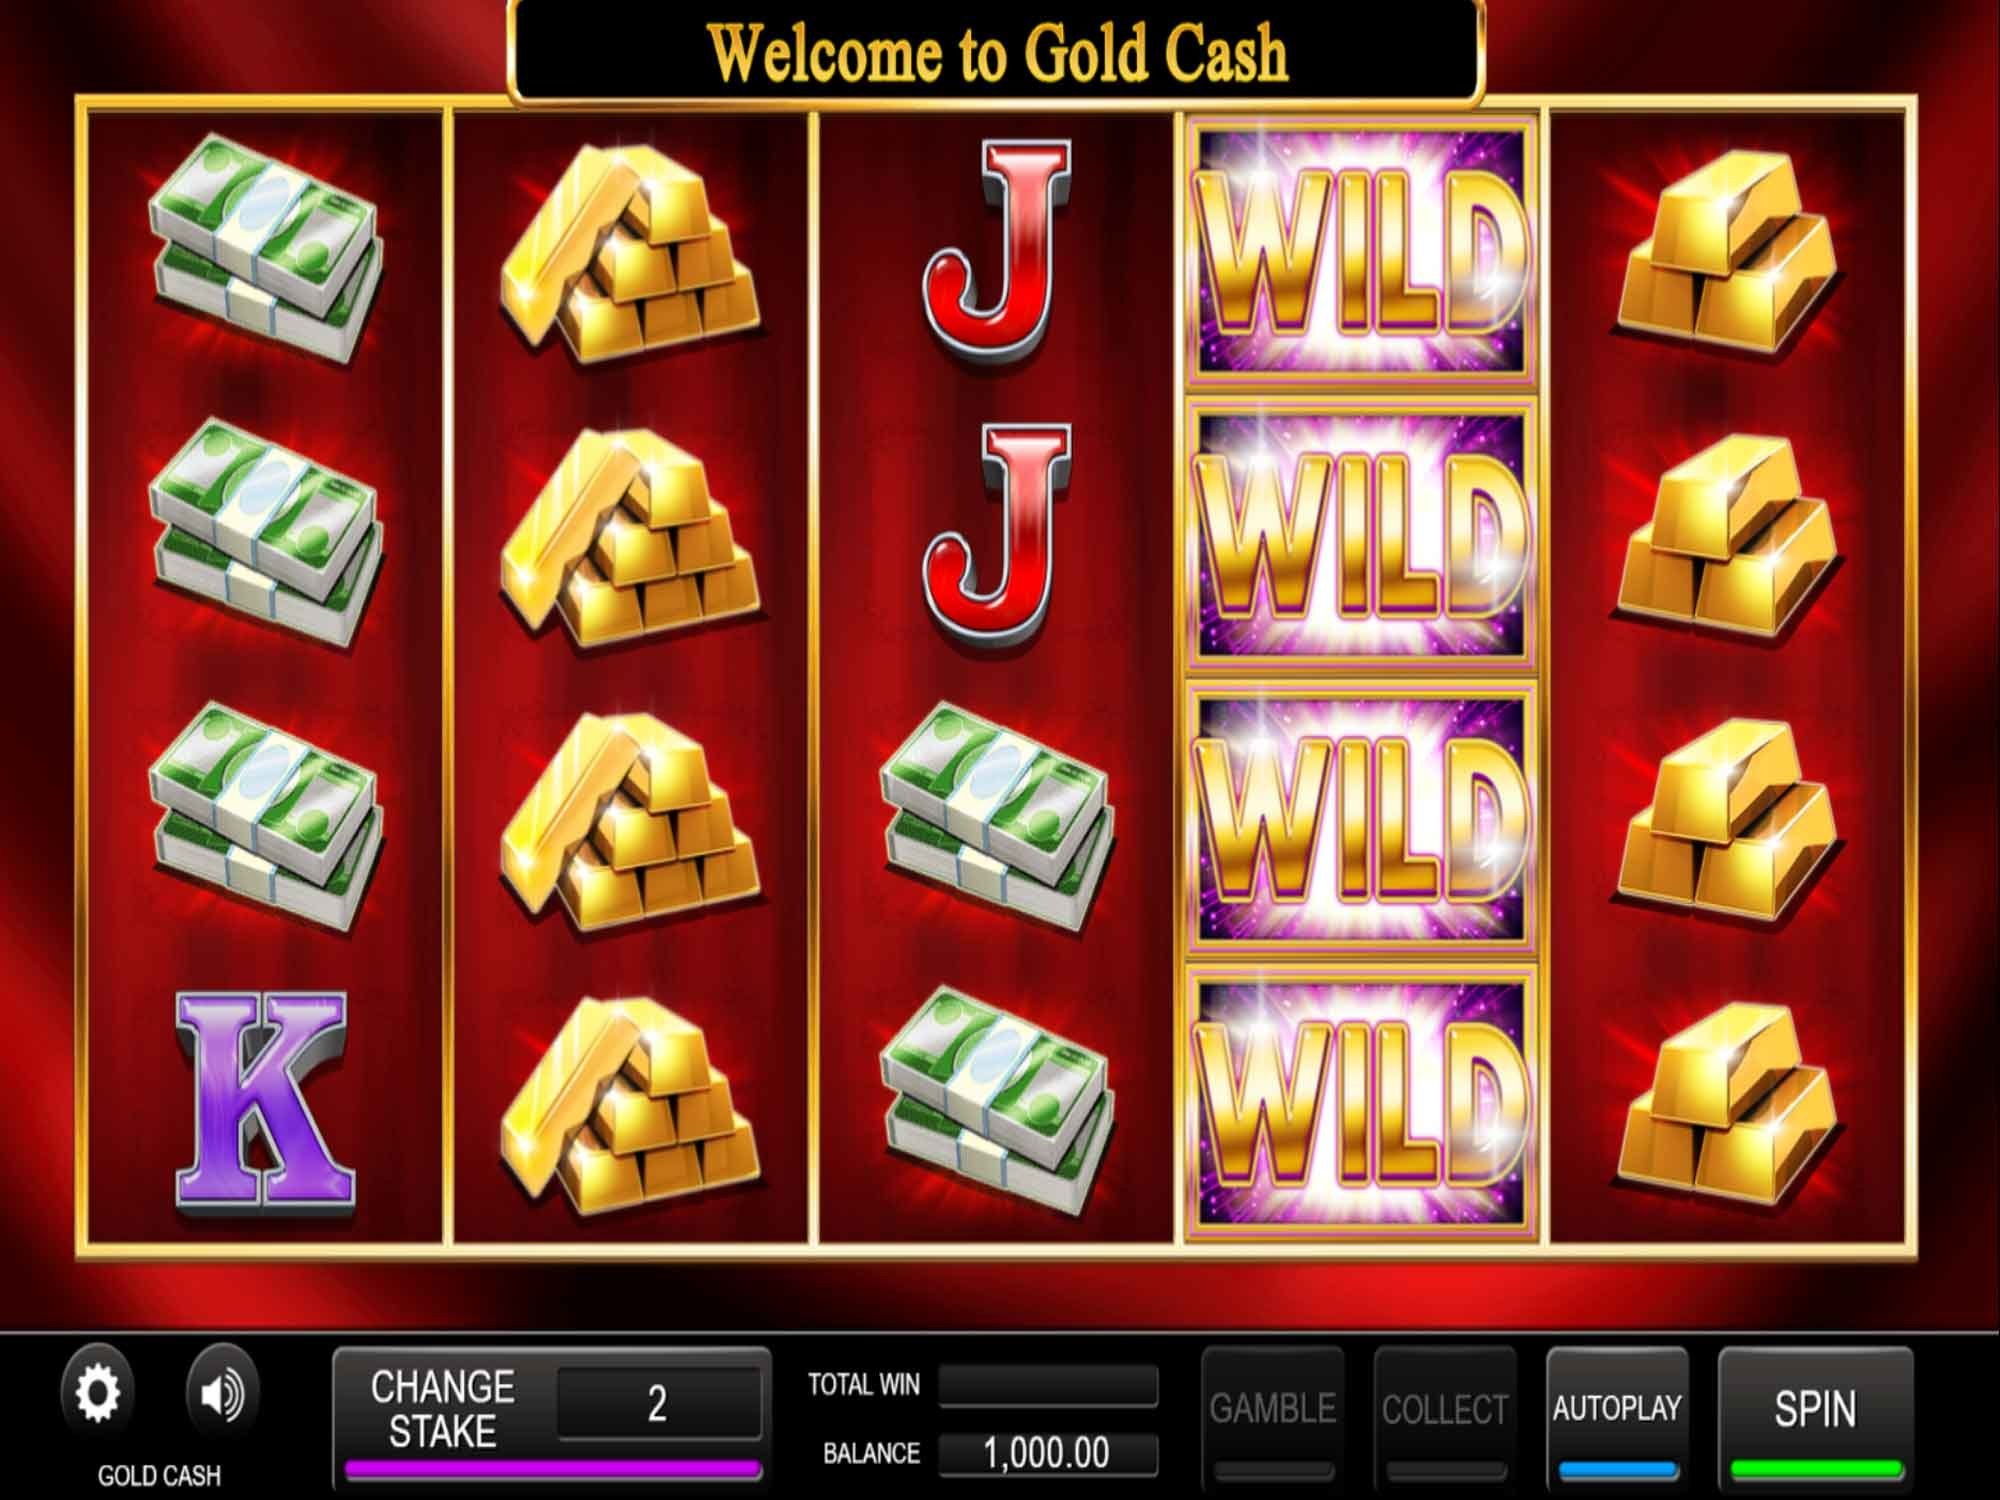 Gold Cash Slot Game